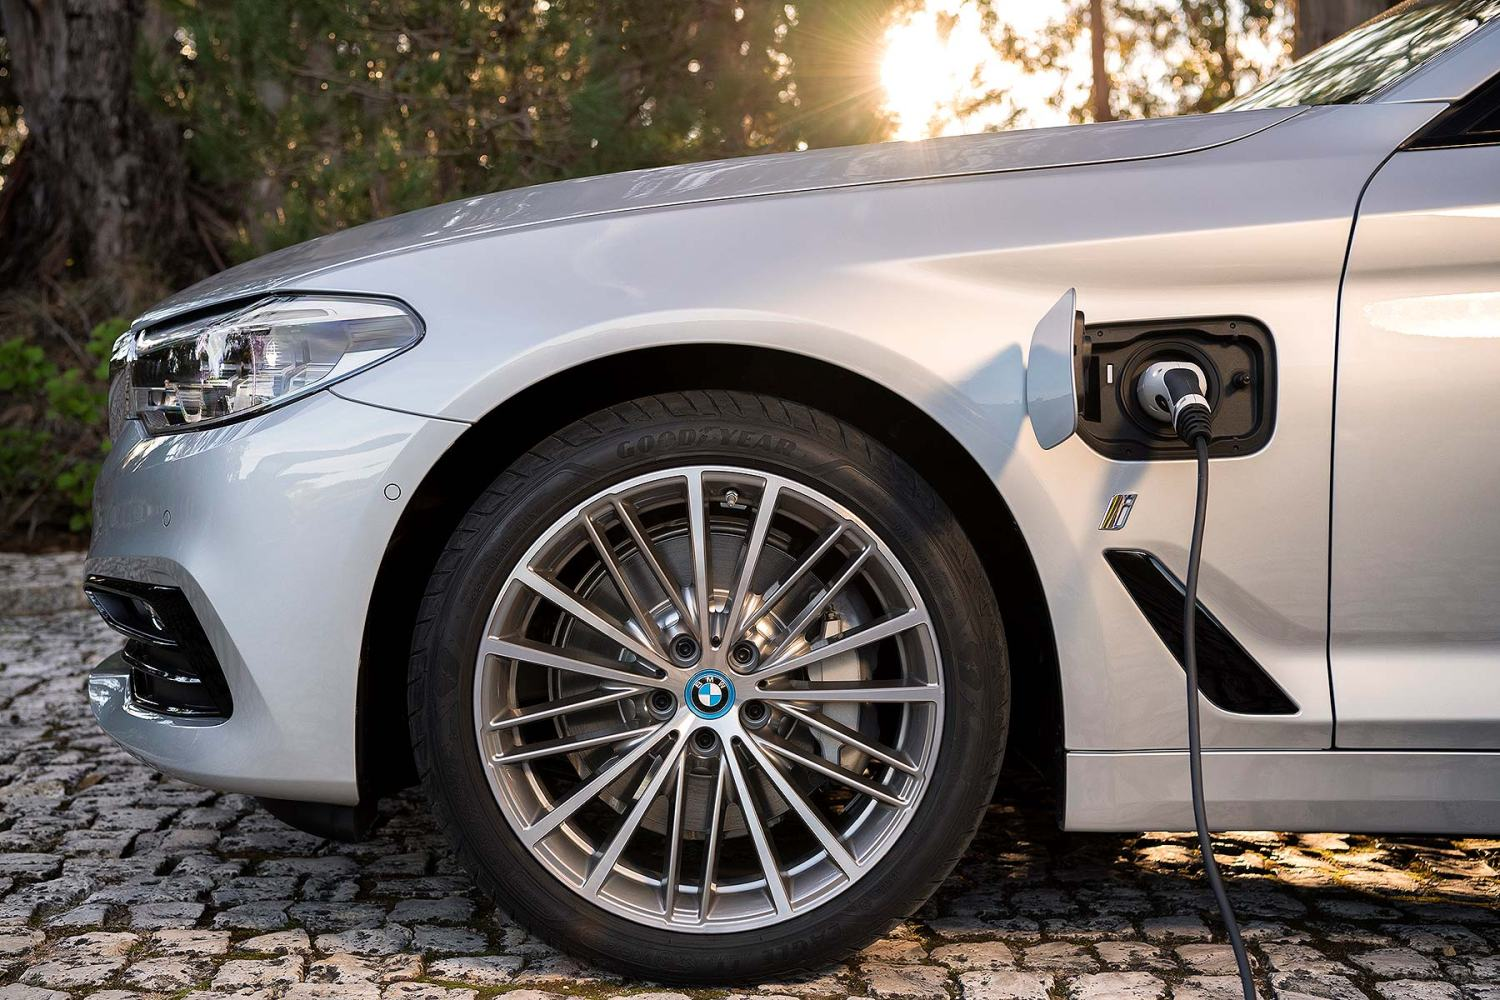 BMW 530e iPerformance plug-in hybrid